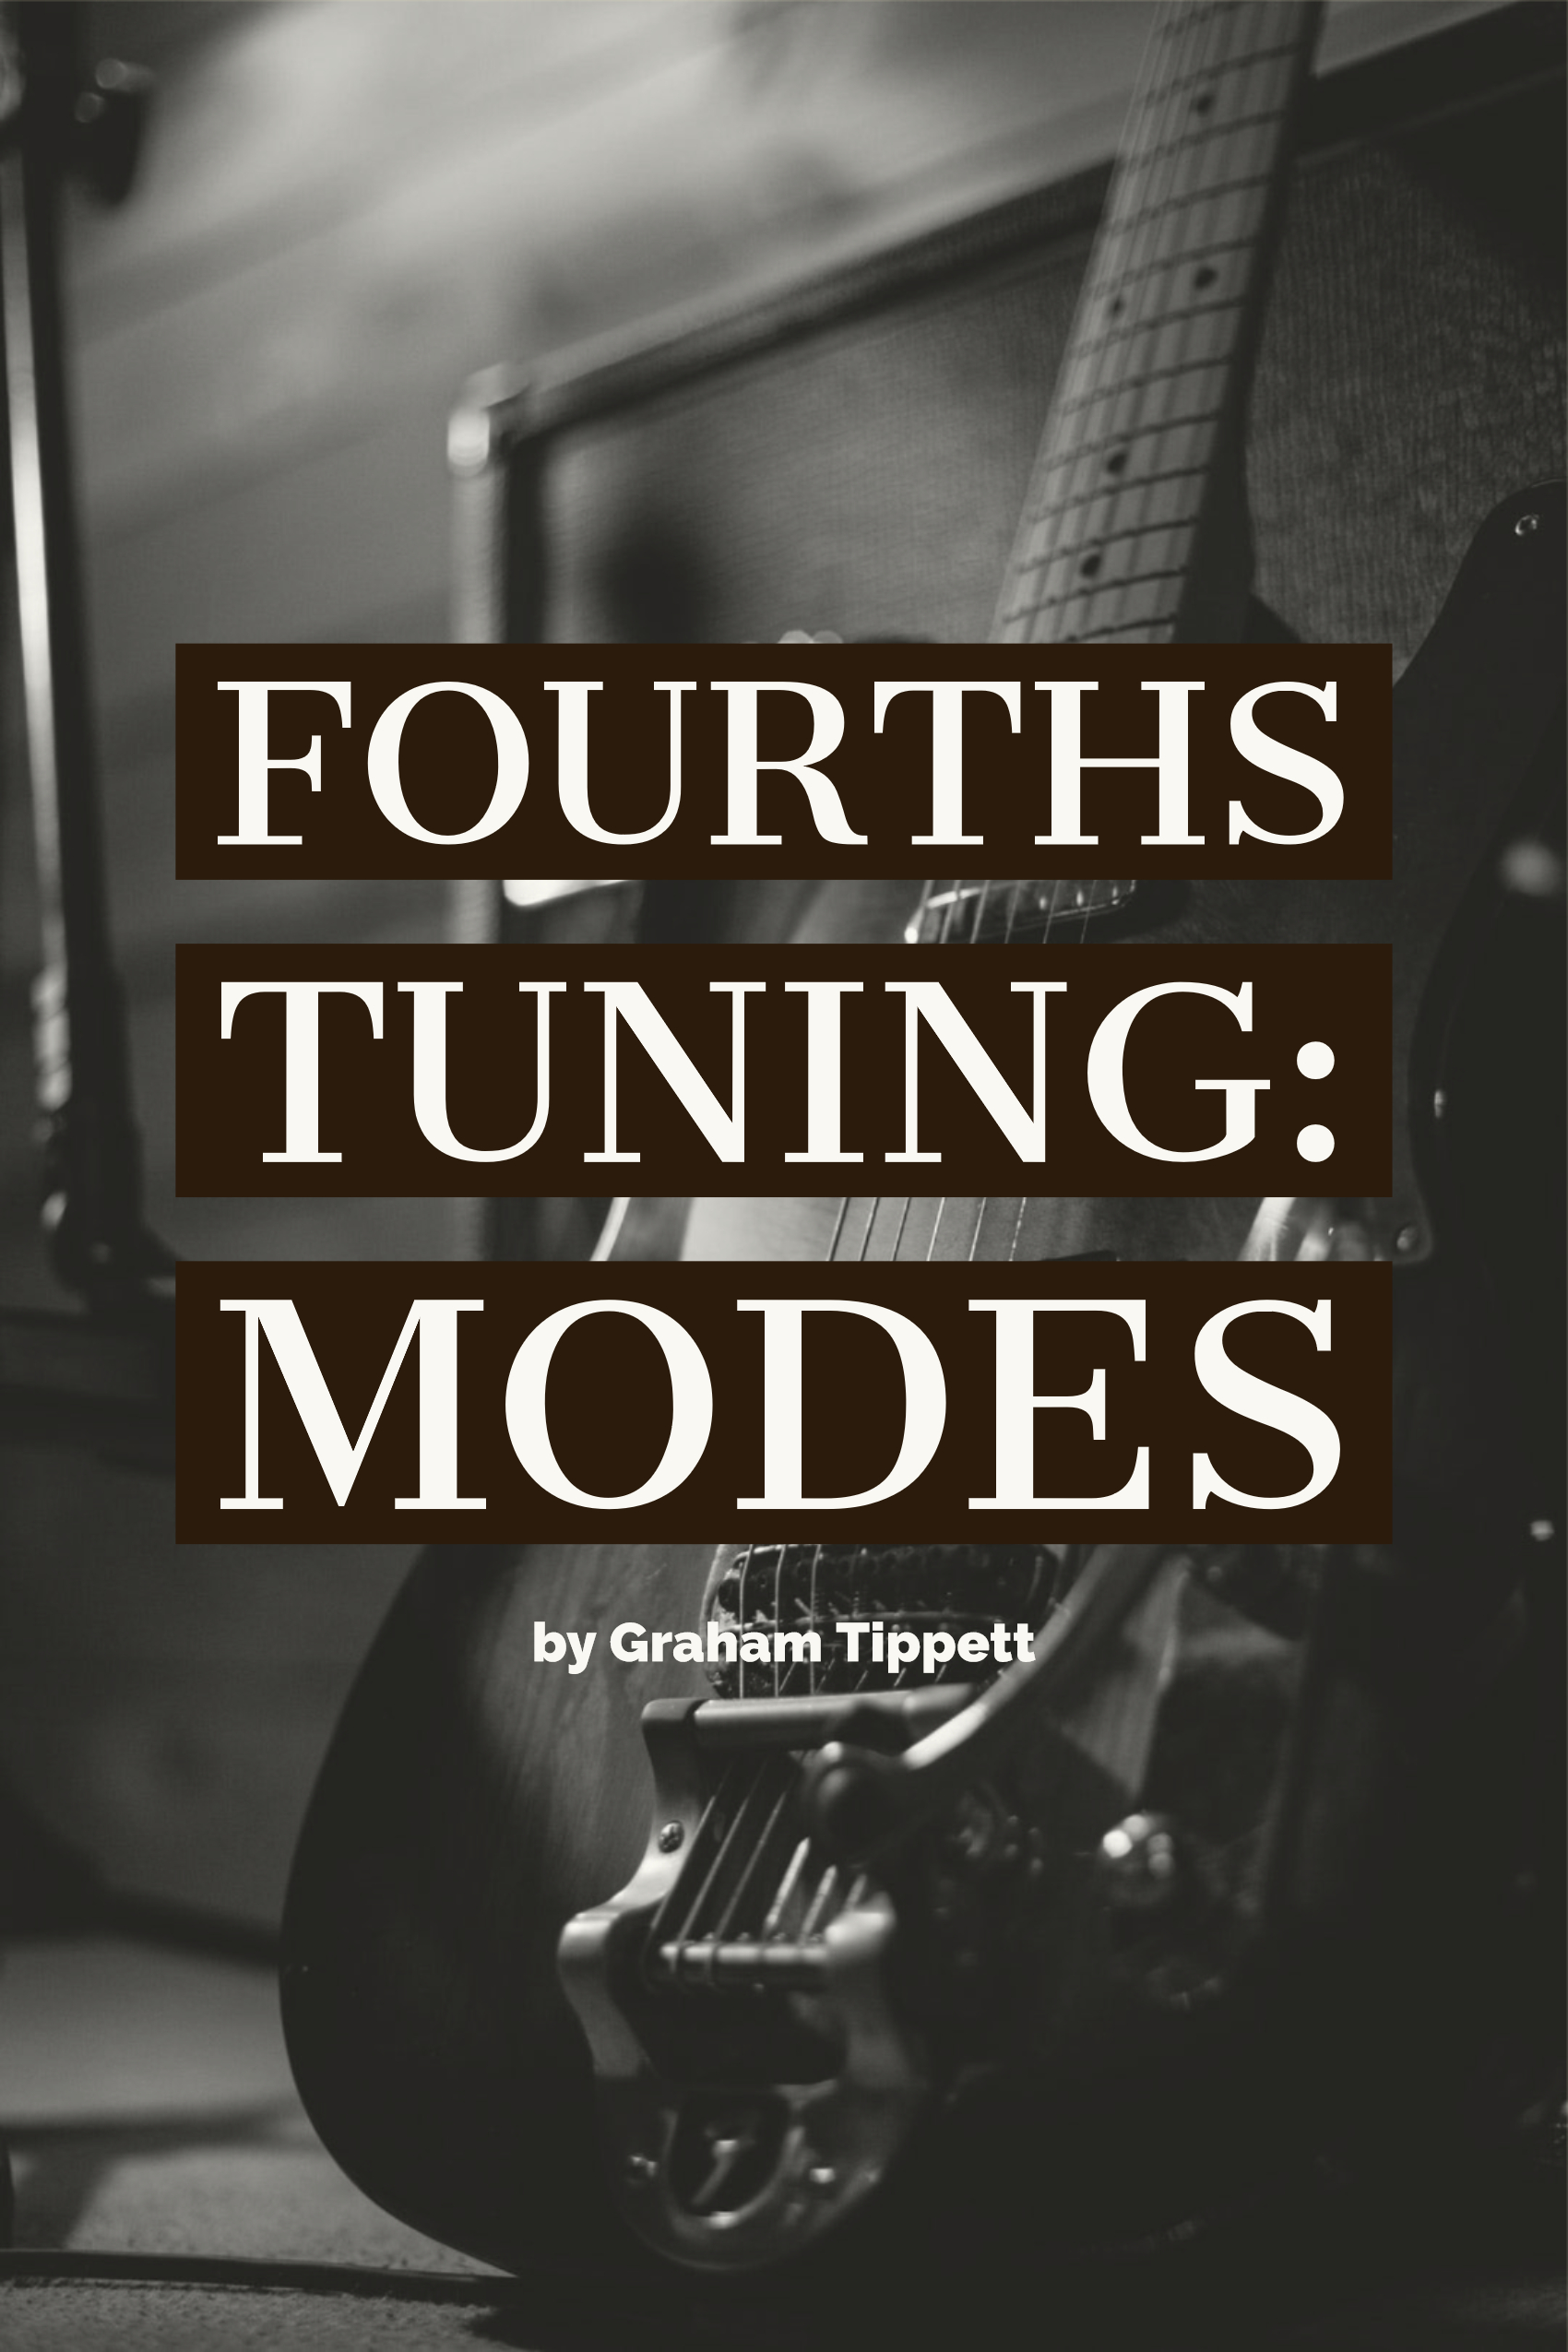 Modes in Fourths Tuning!